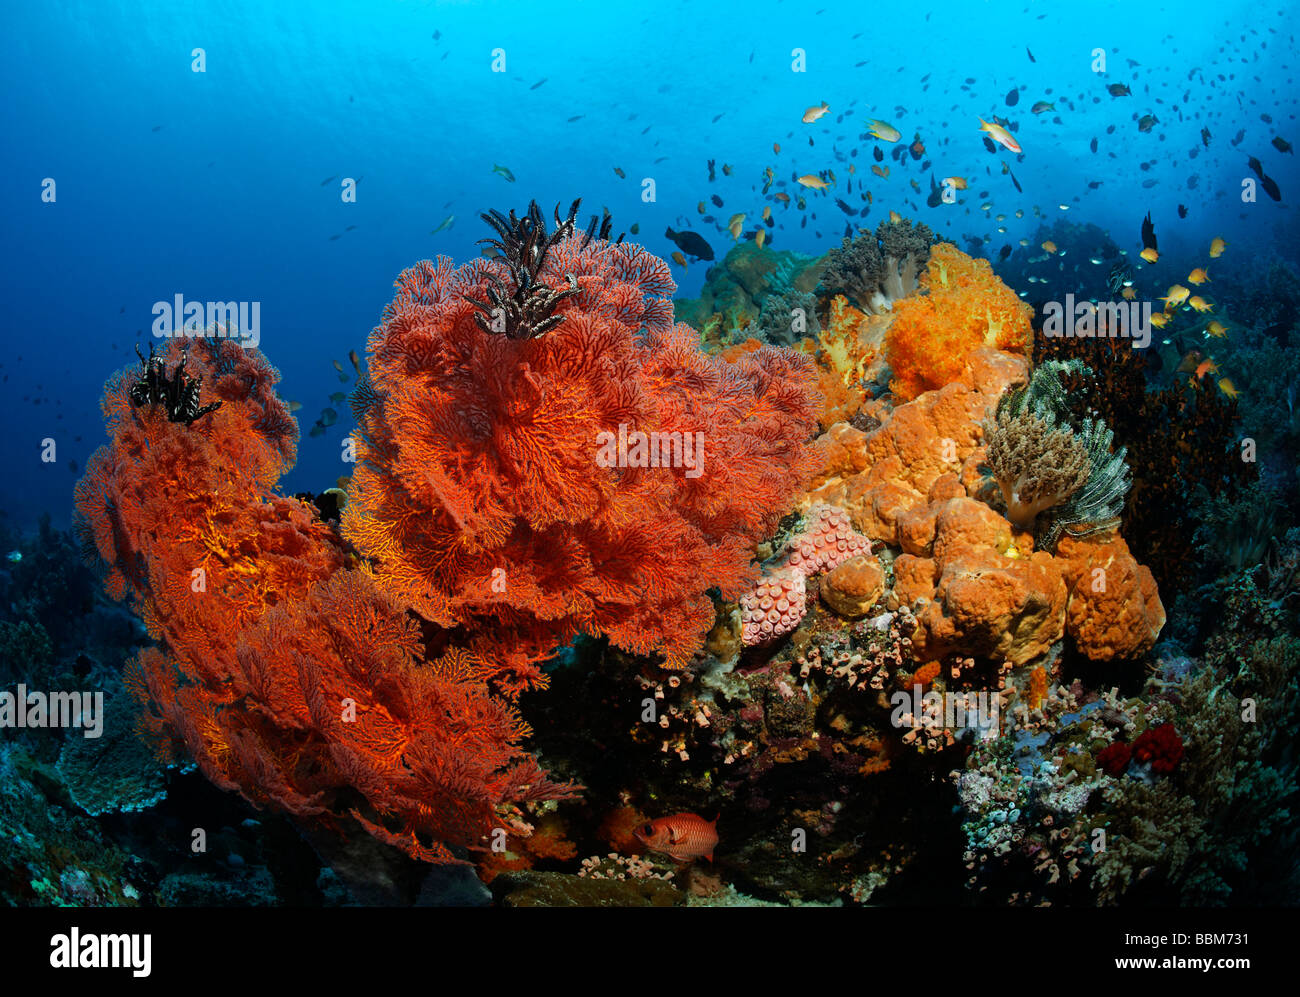 Coral block at coral reef with variety of red sea fans (Melithaea ochracea) and fish, Gangga Island, Bangka Islands, - Stock Image